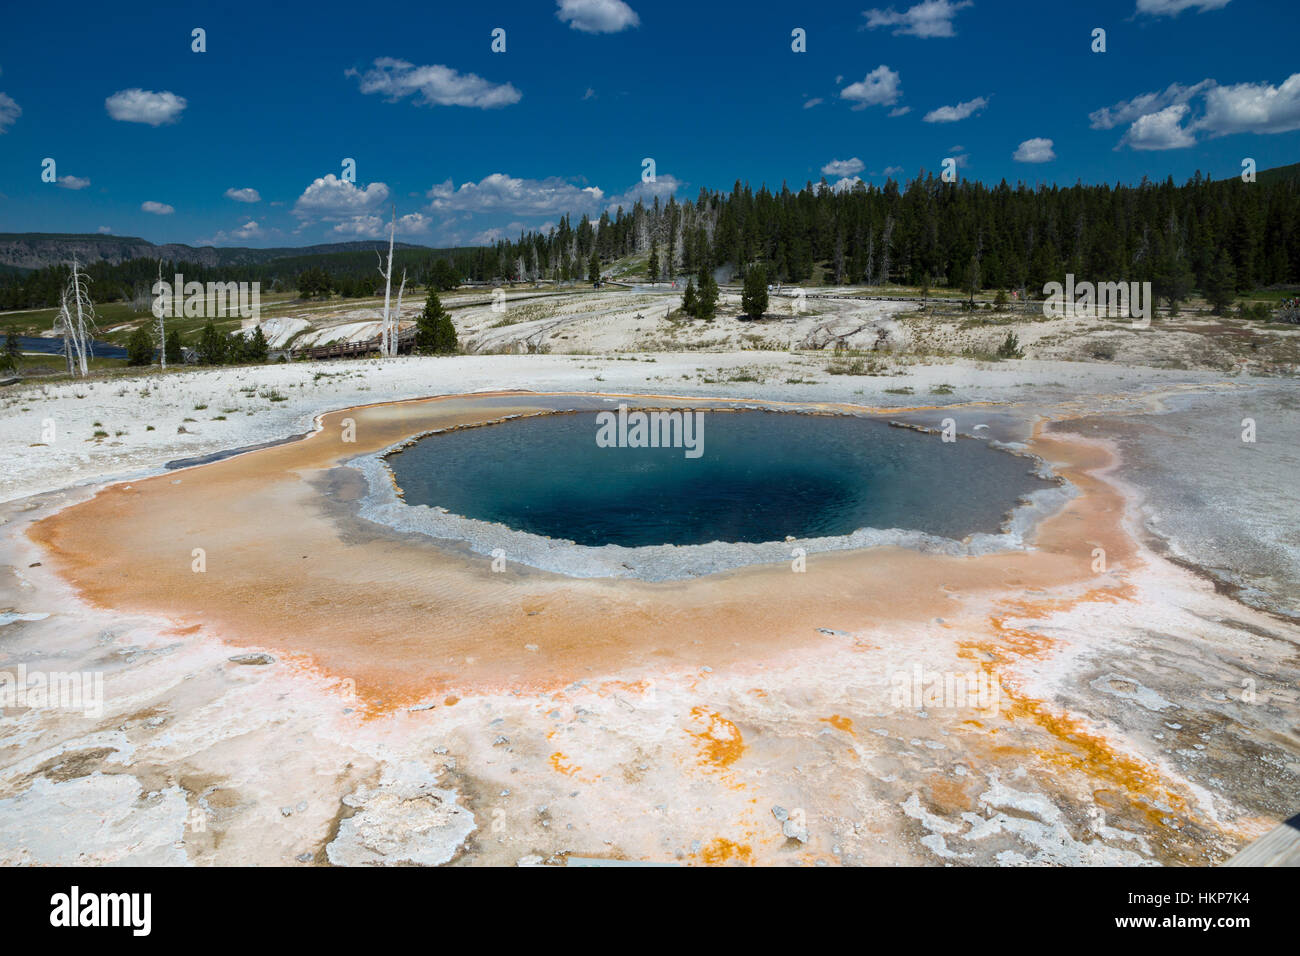 Upper Geyser Basin, Yellowstone National Park, Wyoming, USA - Stock Image